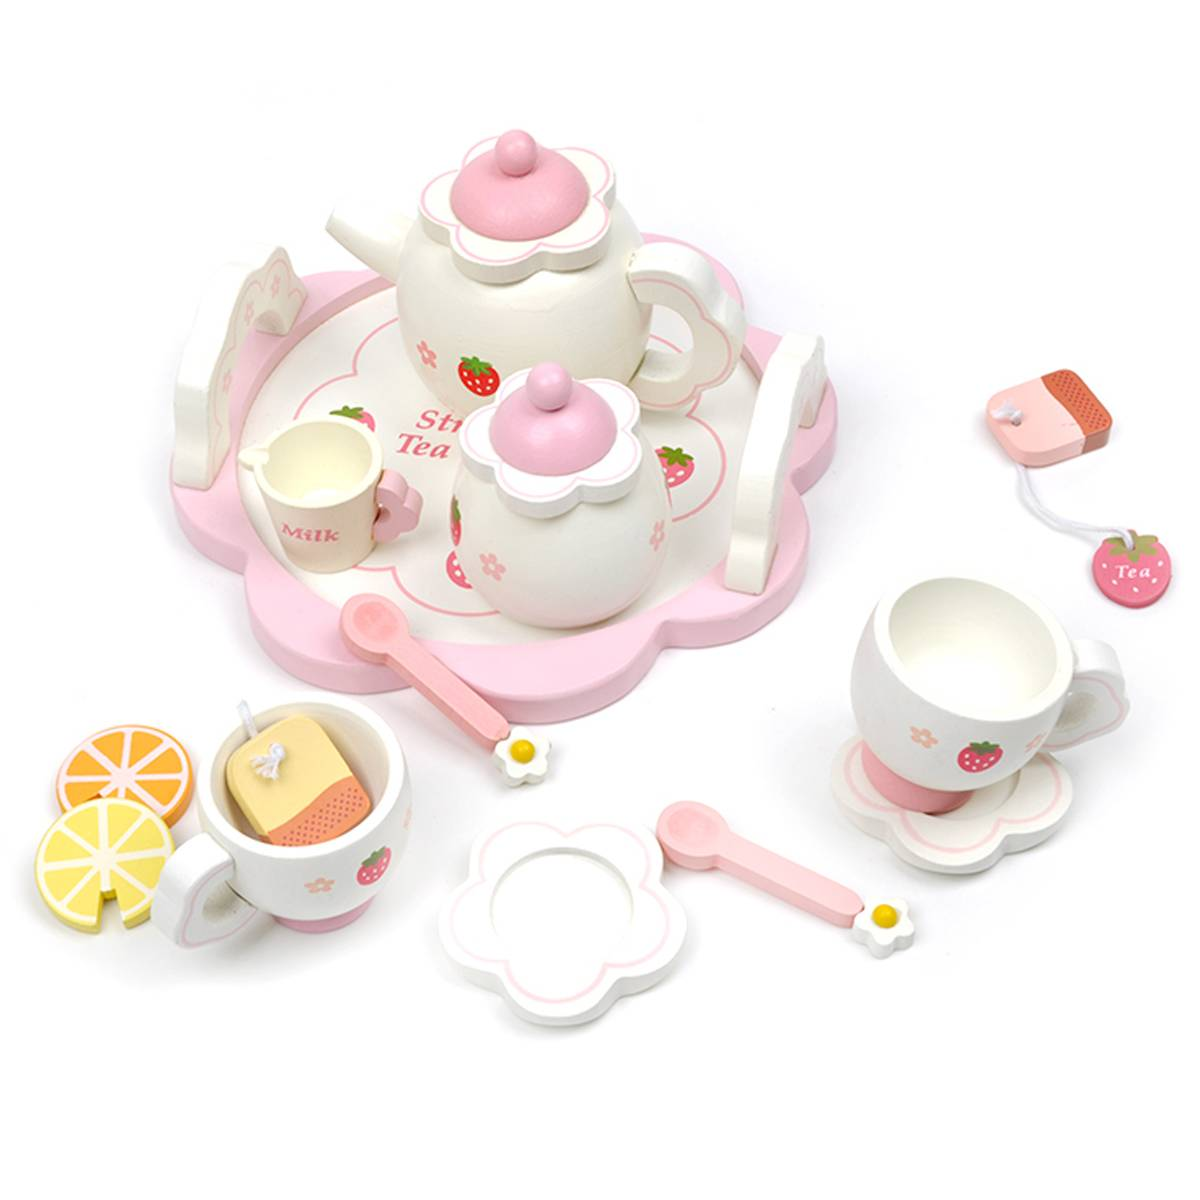 Wooden Tea Set Children/'s Tea Party Plates Mugs Cup Kids Play Toy Birthday Gift